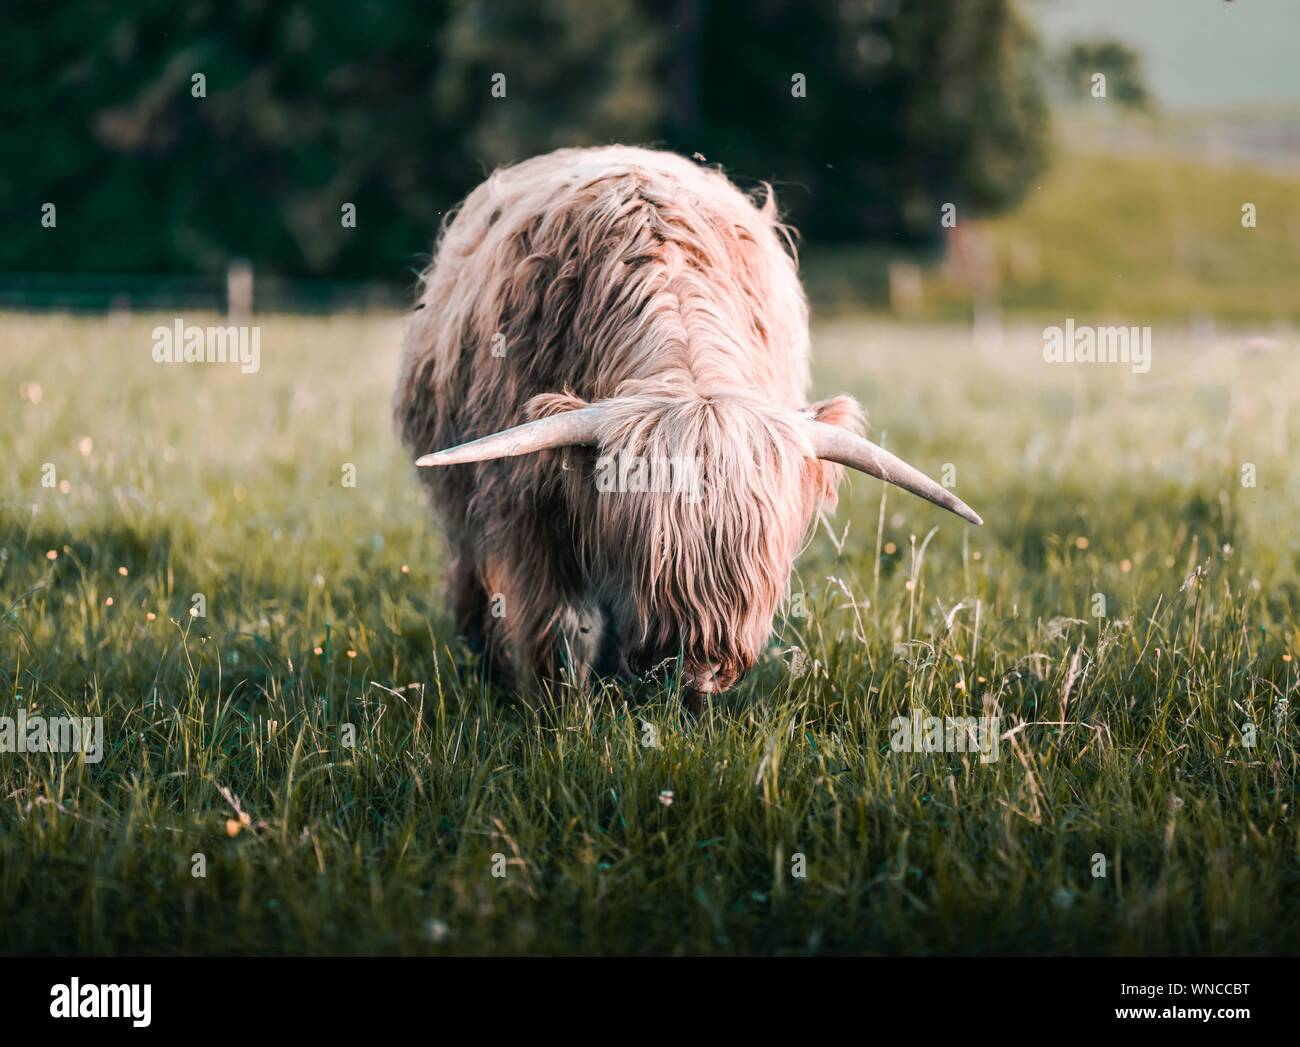 Highland Cattle Grazing On Field Stock Photo